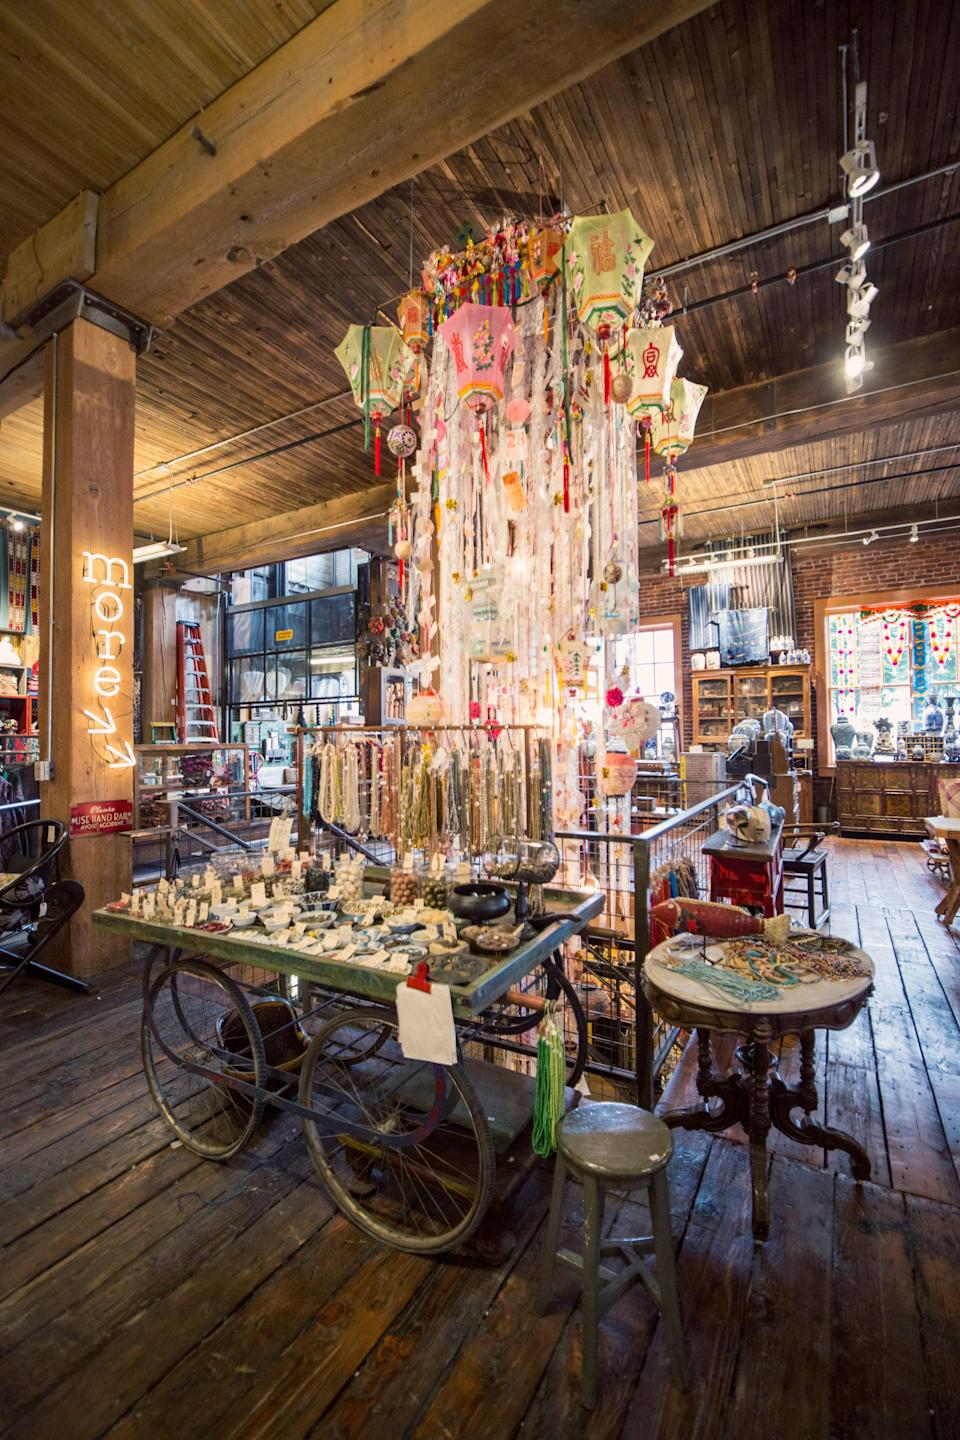 """<p><strong>What's this shop all about?</strong><br> Combining the talents and passions of ceramicist and art collector Patty Merrill and interior designer Bridgid Blackburn, this emporium's tagline is """"purveyors of curious objects,"""" and that's putting things mildly—walk up the steep stairs into the unassuming historic inner eastside warehouse and into what feels like a treasure hunter's fever dream, particularly if you're a seeker of rare, handcrafted, meaningfully-made, and sustainably-sourced textiles, jewelry, and home decor. While much of the inventory hails from distant lands like India, Israel, <a href=""""https://www.cntraveler.com/destinations/bali?mbid=synd_yahoo_rss"""" rel=""""nofollow noopener"""" target=""""_blank"""" data-ylk=""""slk:Bali"""" class=""""link rapid-noclick-resp"""">Bali</a>, <a href=""""https://www.cntraveler.com/story/how-to-take-your-vietnam-trip-to-the-next-level?mbid=synd_yahoo_rss"""" rel=""""nofollow noopener"""" target=""""_blank"""" data-ylk=""""slk:Vietnam"""" class=""""link rapid-noclick-resp"""">Vietnam</a>, and Guatemala, there's plenty of local artisan presence too, both on shelves and via the pop-ups nested within the store; be sure to browse Appetite, an apothecary and houseplant shop curated by two New Mexico-born sisters (hence the Los Poblanos lavender salve), and Hello! Good Morning!, a next-level toy shop founded by a former Laika animation studio artist.</p> <p><strong>What items jump out at you as you browse?</strong><br> Hand-dyed hemp tunics, elaborately beaded Ayala Bar jewelry from Israel, teetering vintage brass tiffins, brightly-stitched kantha quilts and vintage silk blankets hand-loomed in Laos, tarot decks and traveling shrines, double-sided Andy Warhol puzzles, and everything needed for a <a href=""""https://www.cntraveler.com/galleries/2014-10-17/photos-dia-de-los-muertos-celebrations-from-around-the-world?mbid=synd_yahoo_rss"""" rel=""""nofollow noopener"""" target=""""_blank"""" data-ylk=""""slk:Day of the Dead"""" class=""""link rapid-noclick-resp"""">Day of the Dead</a> altar (not to menti"""